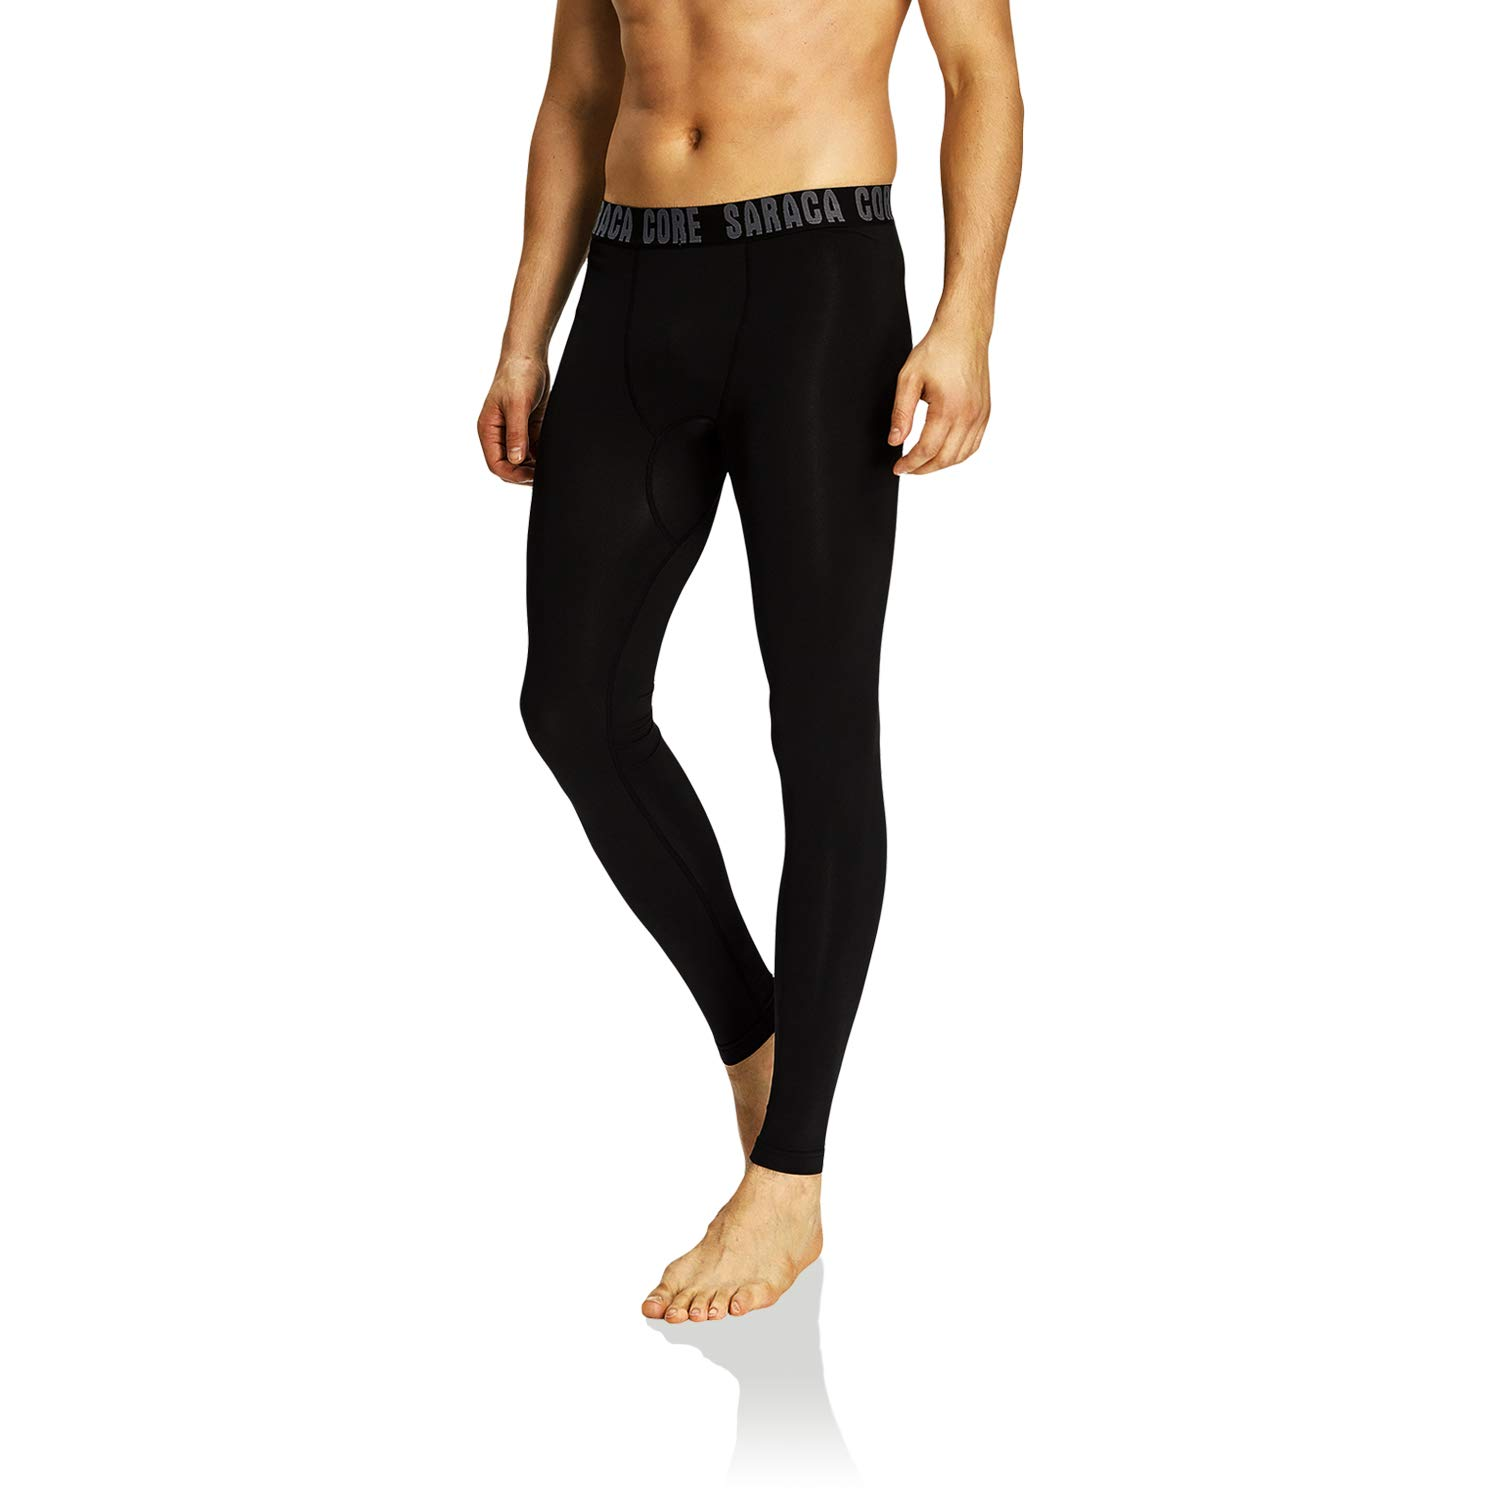 saraca core Men Youth Compression Pants Athletic Tights Running Leggings Baselayer Cool Dry Black by saraca core